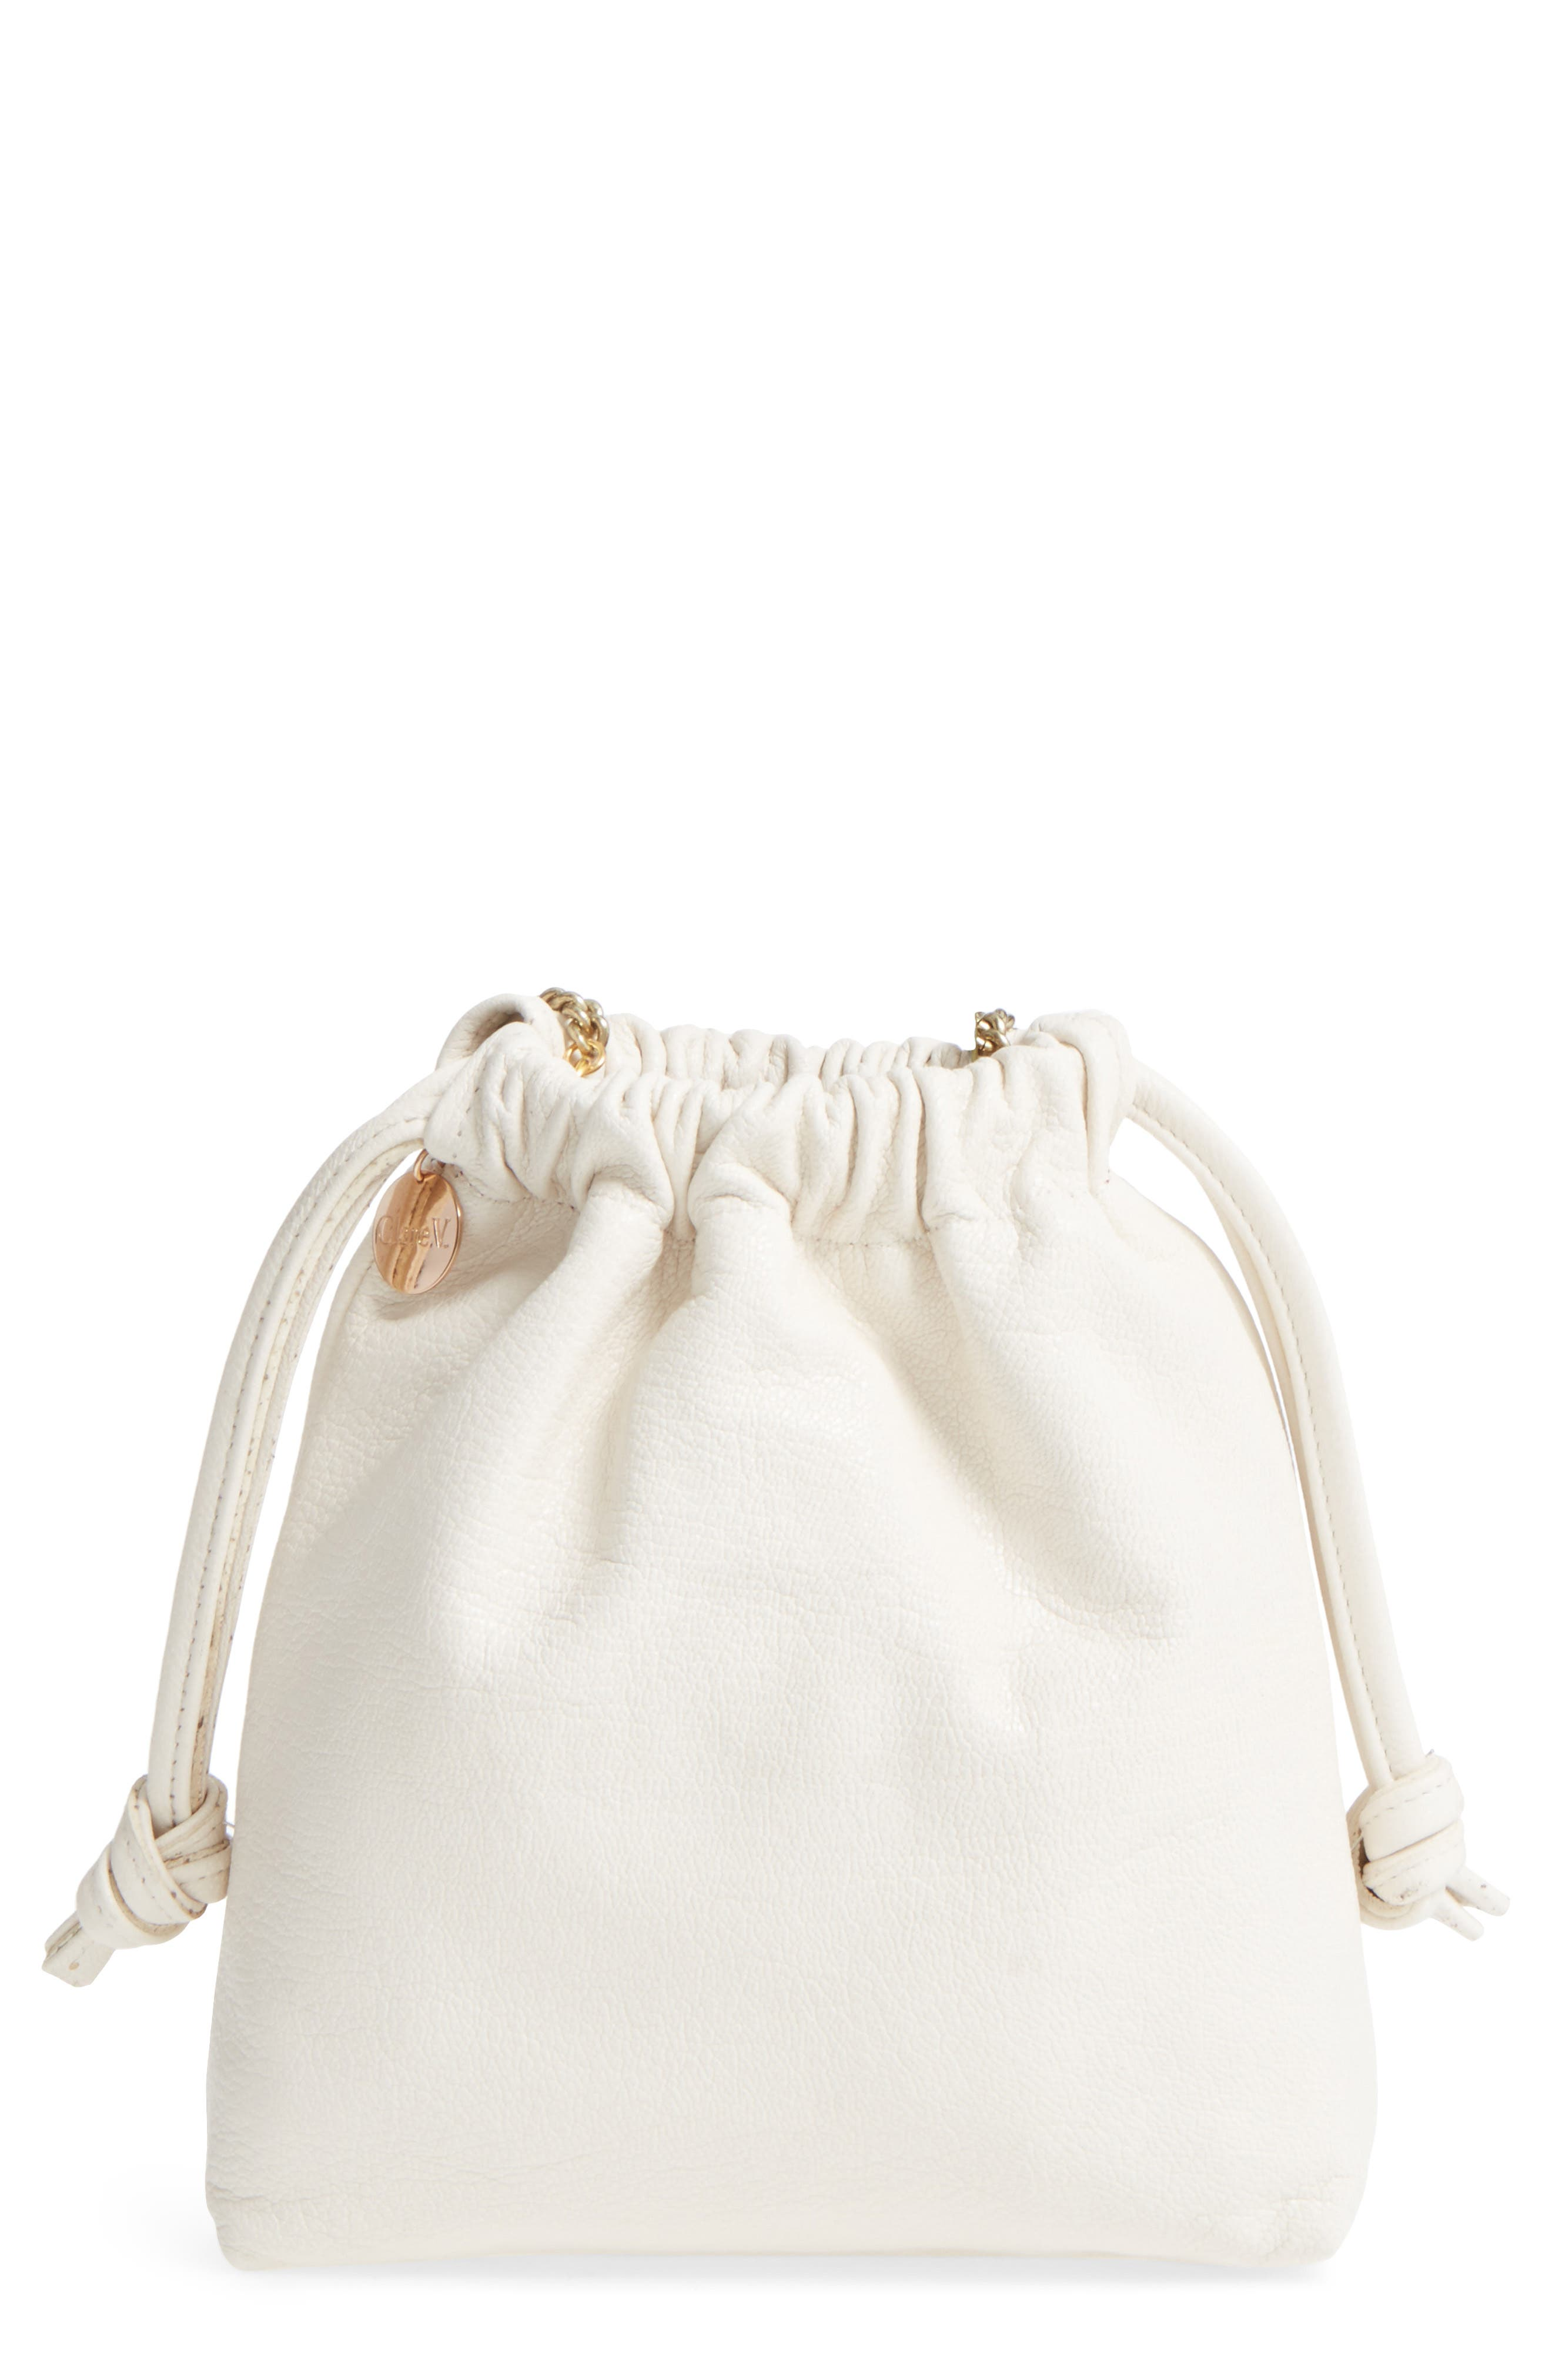 Main Image - Clare V. Leather Drawstring Wristlet Pouch